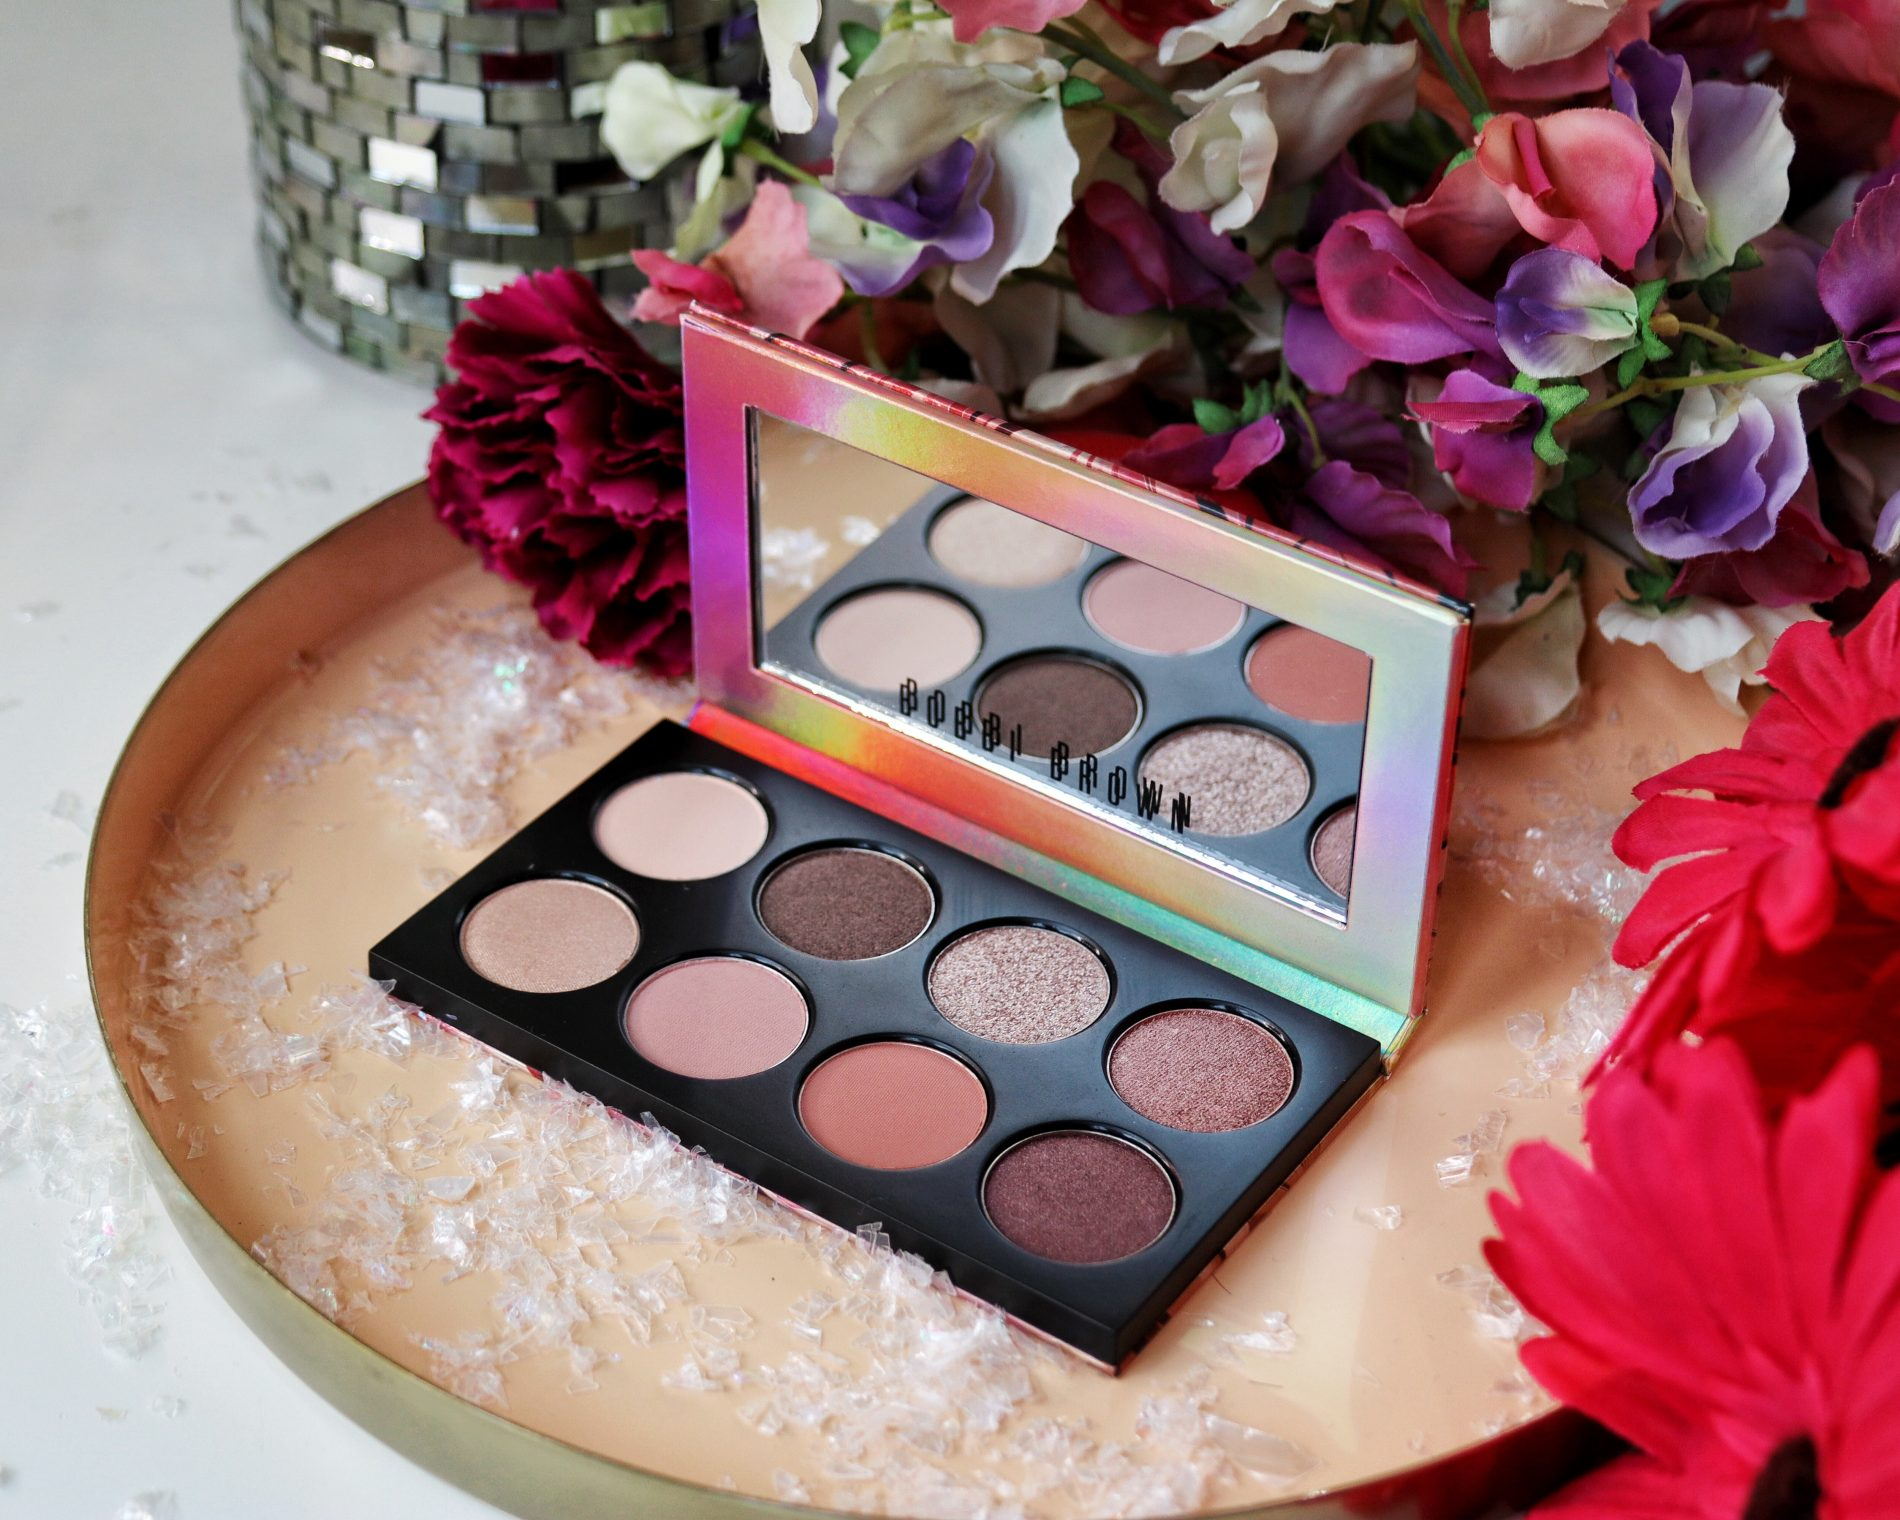 Bobbi Brown Love In The Afternoon Eyeshadow Palette! A beautiful collection of nude and berry eyeshadows sit in a palette on a pink tray surrounded by pink flowers. This post contains party and winter makeup looks.